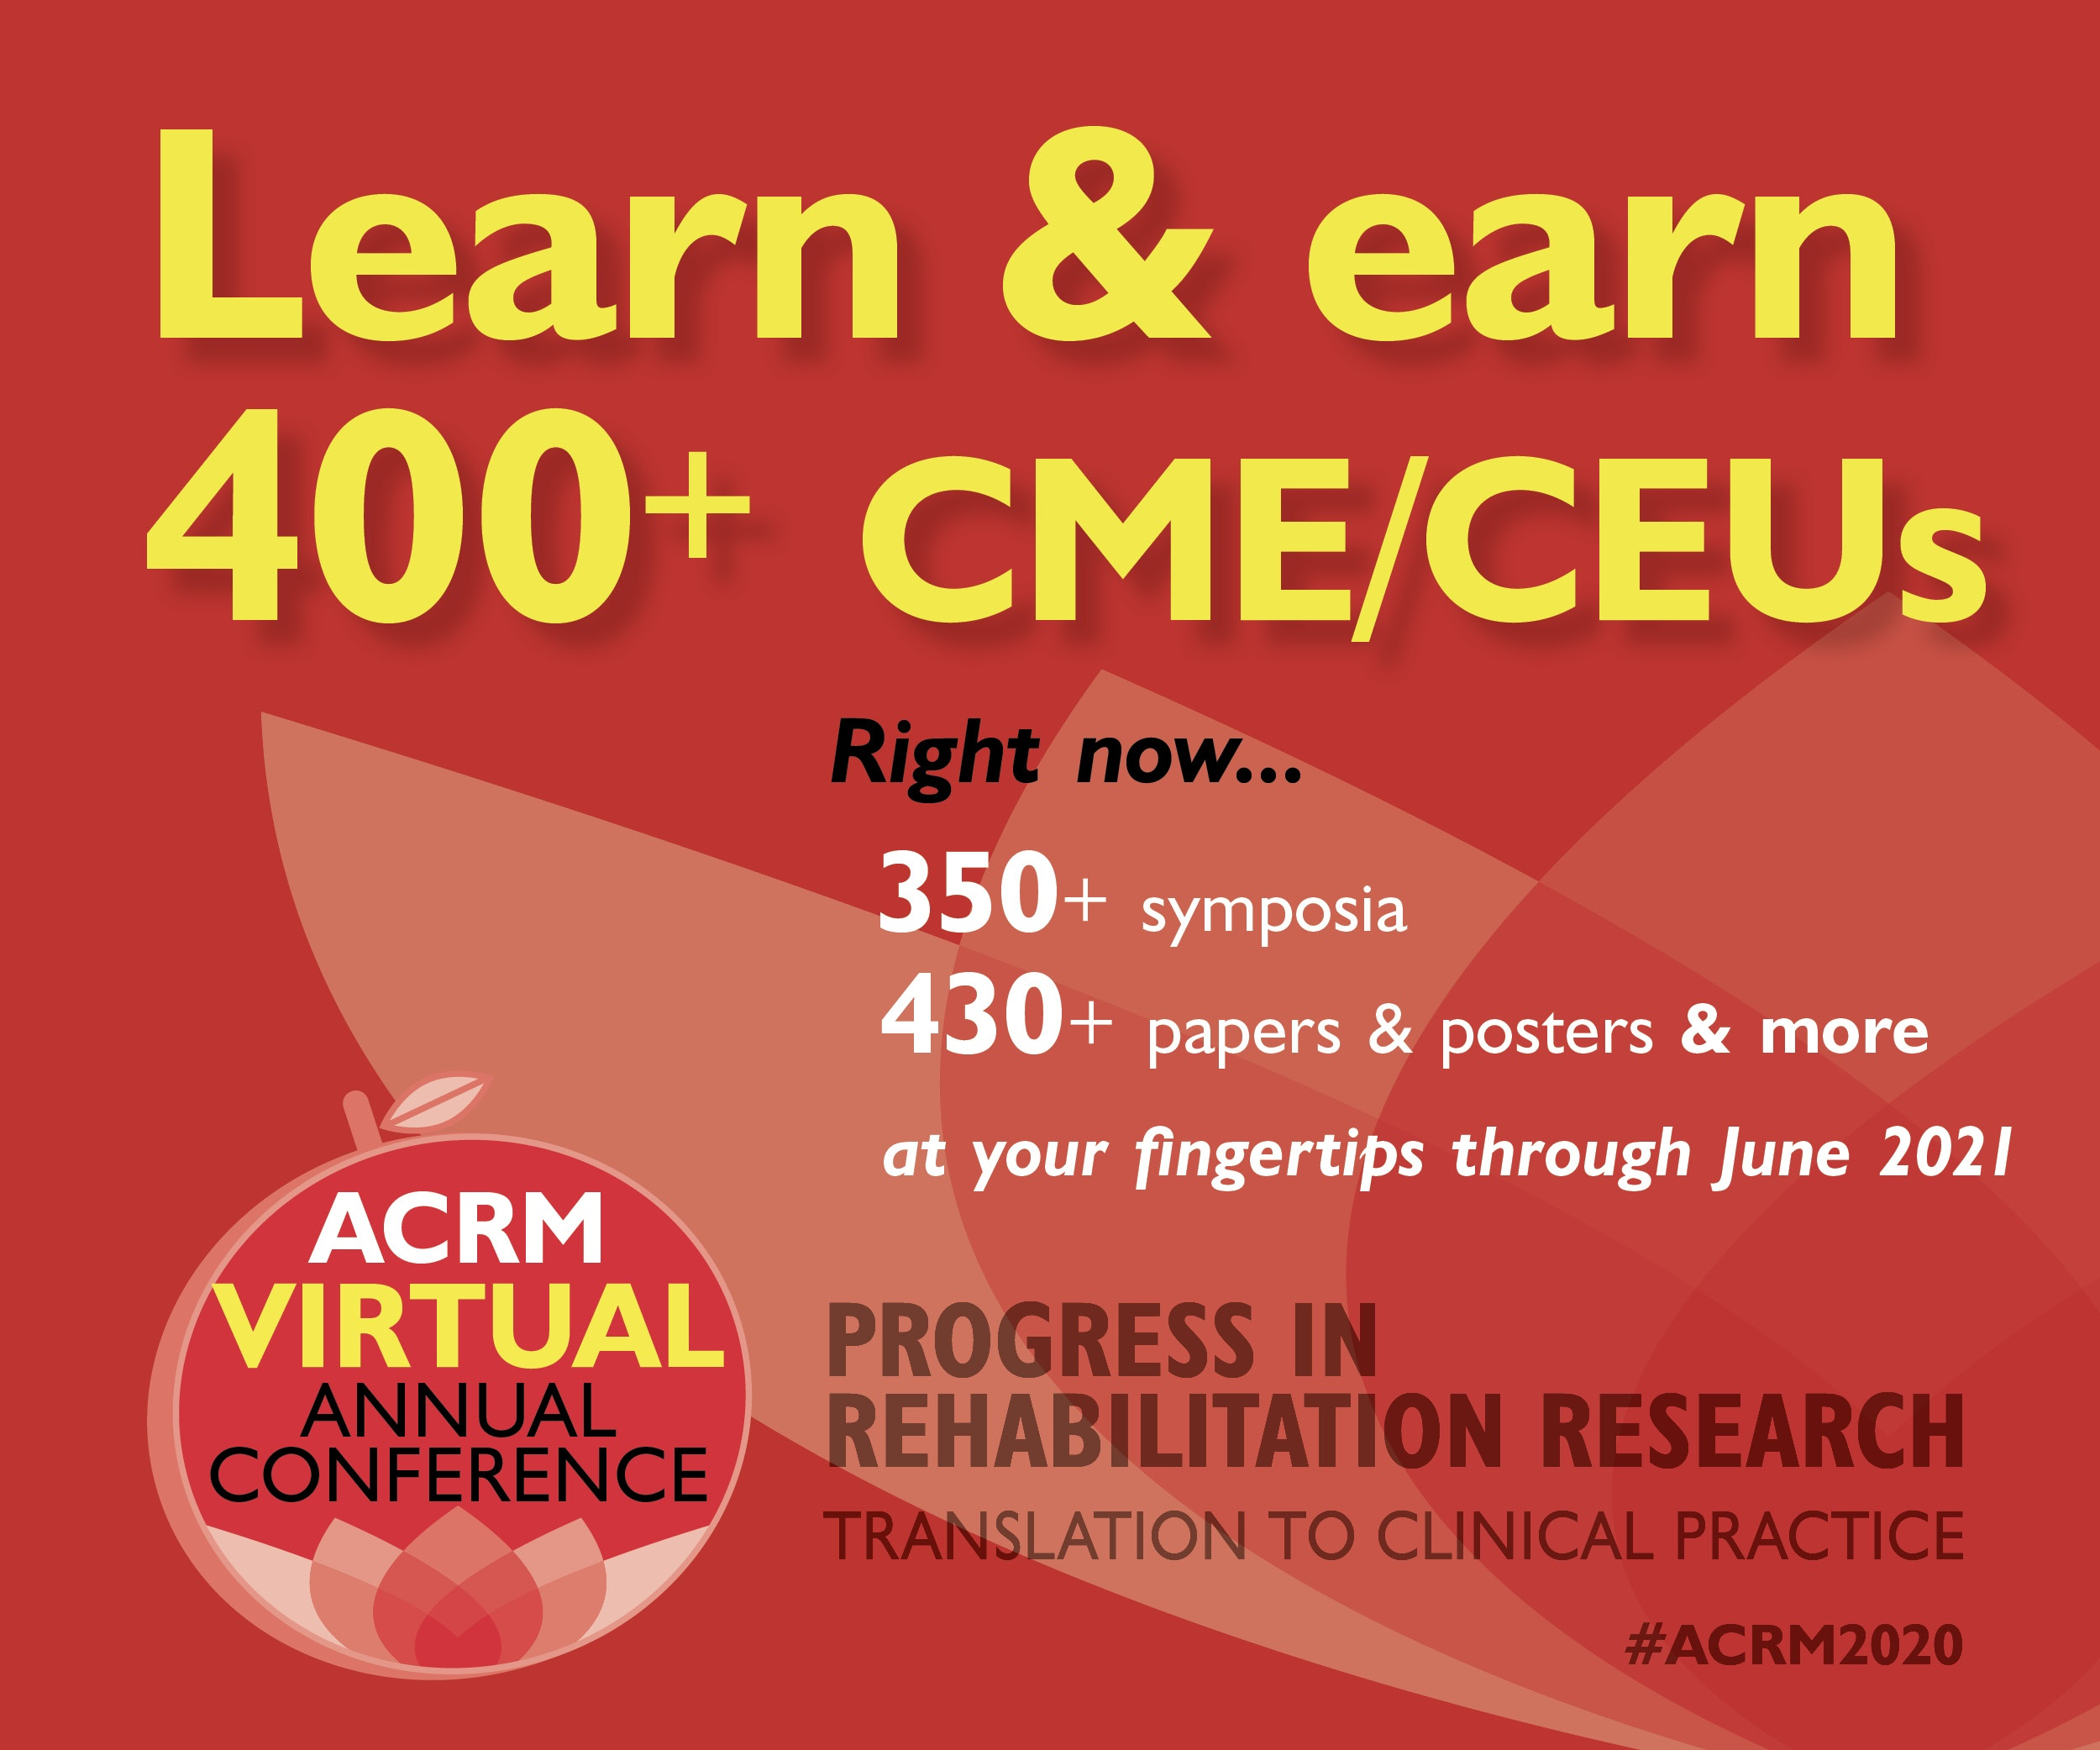 Learn & earn 400+ CME/CEUs